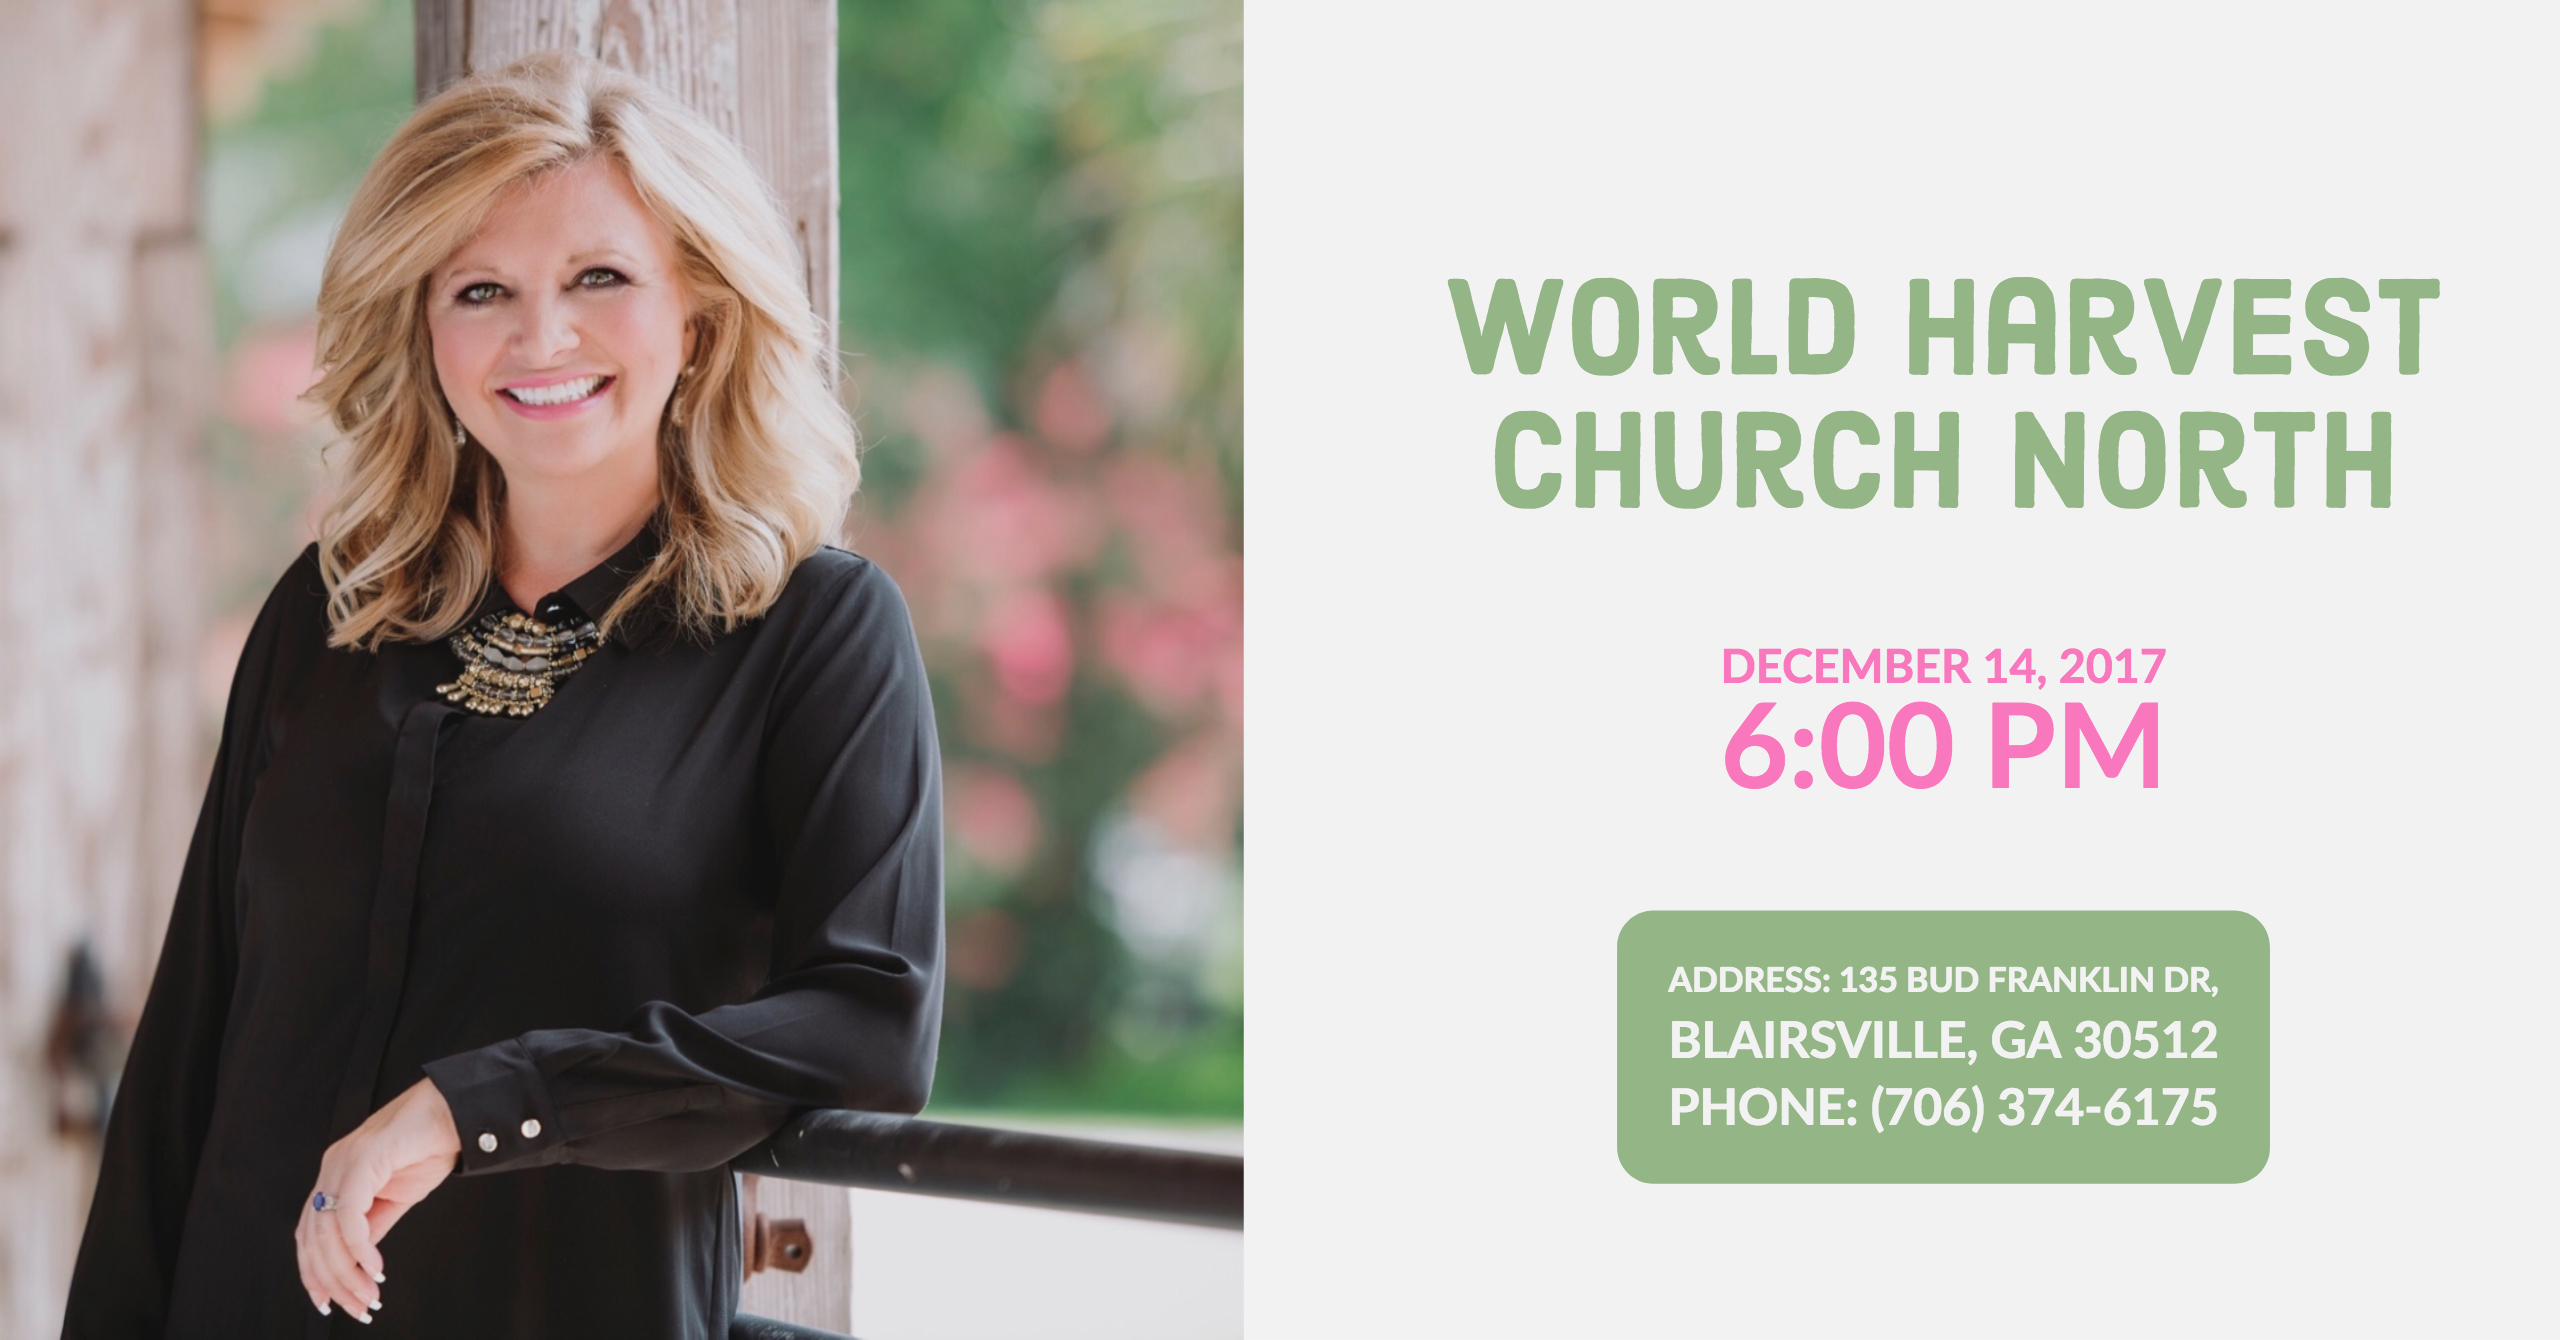 World Harvest Church North